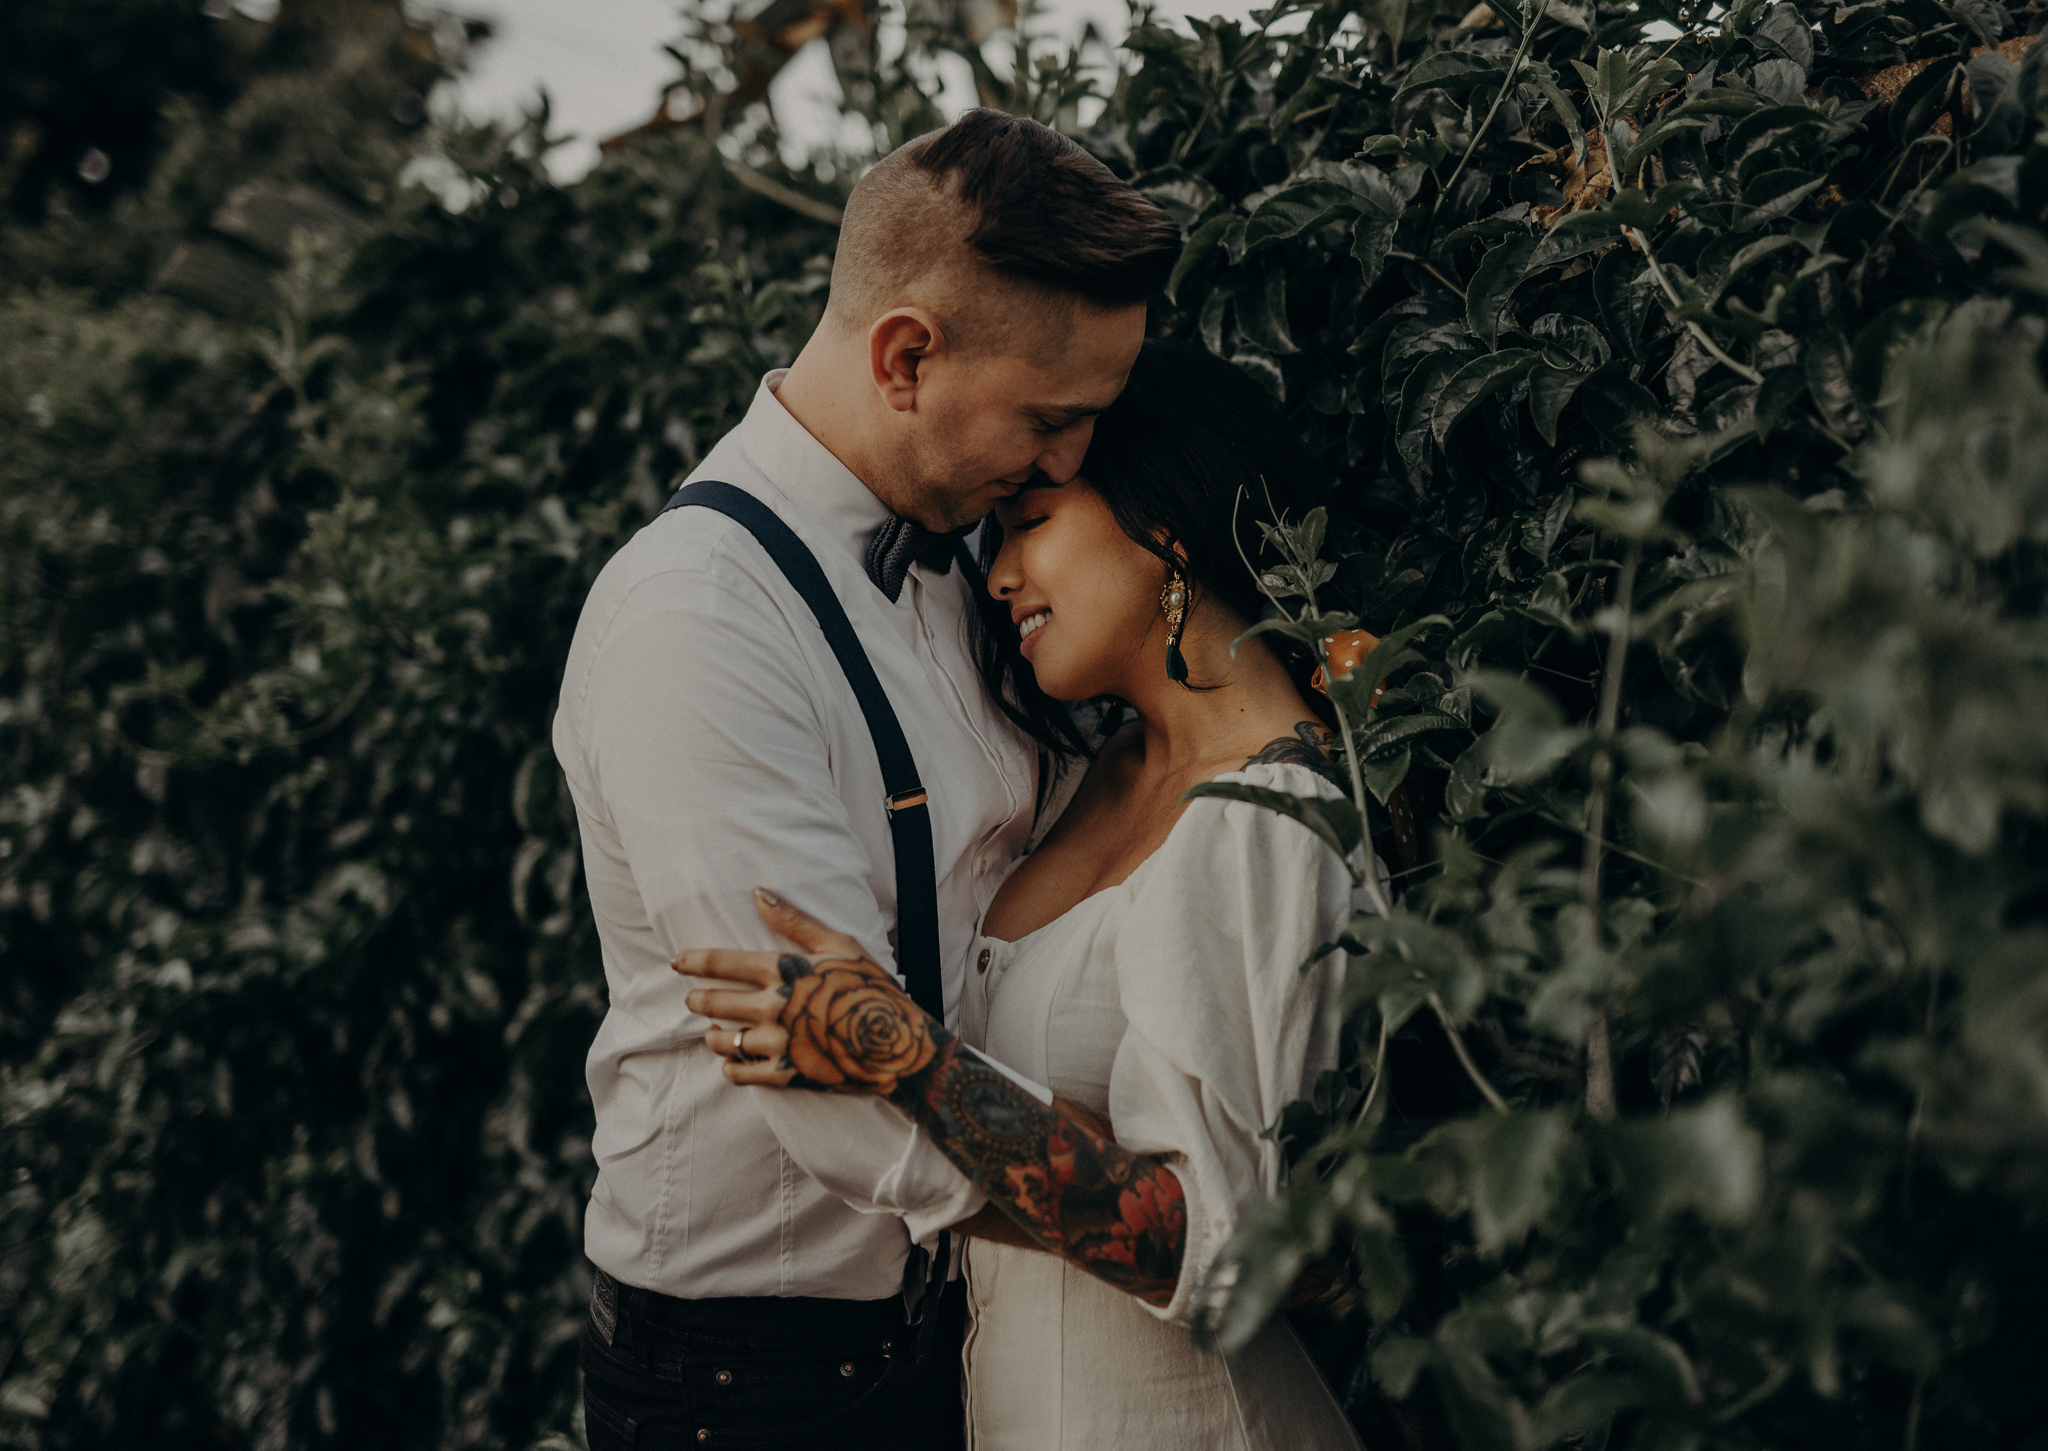 Wedding Photographer in LA - Los Angeles Wedding Photos - Tattoo Shop Engagement Session - IsaiahAndTaylor.com-033.jpg